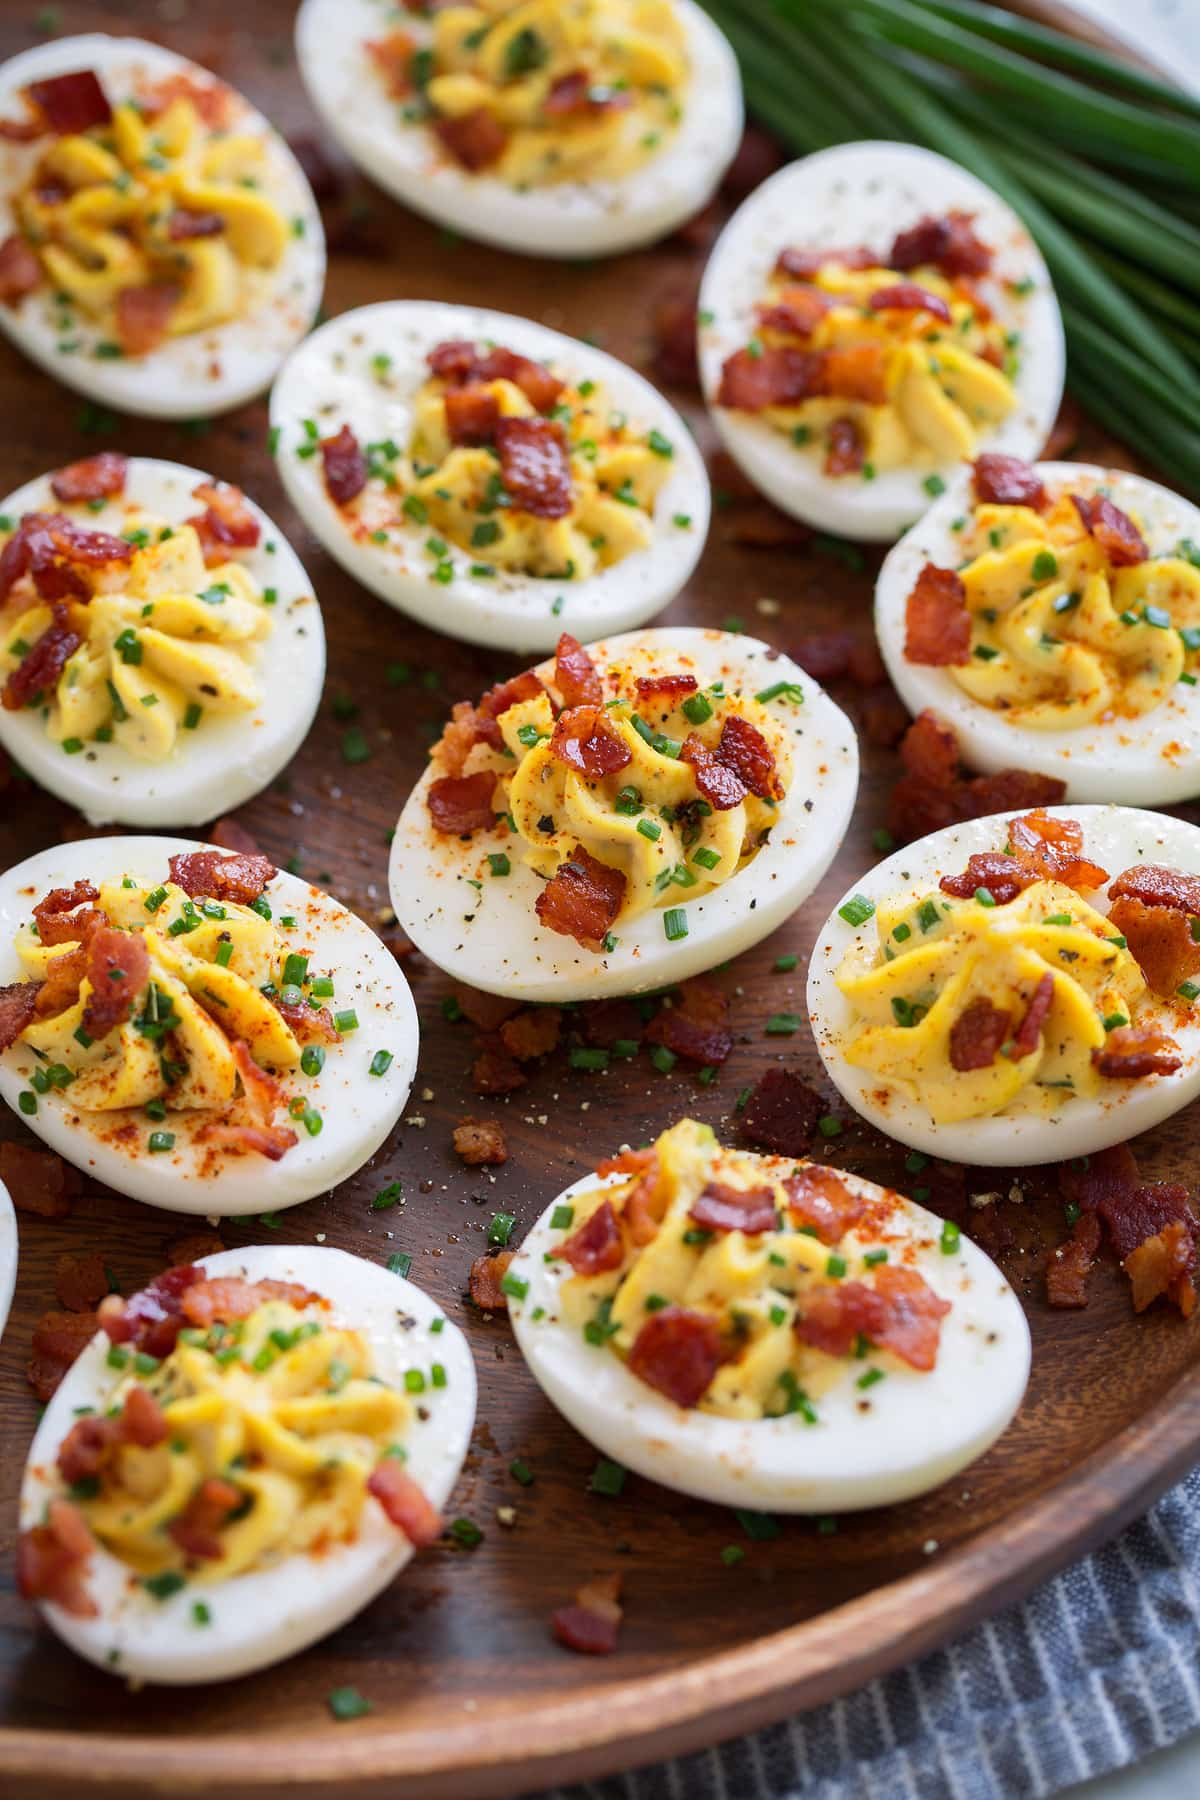 Wooden plate filled with deviled eggs. Eggs filled with a creamy mayonnaise and egg yolk filling and are garnished with chives and bacon.